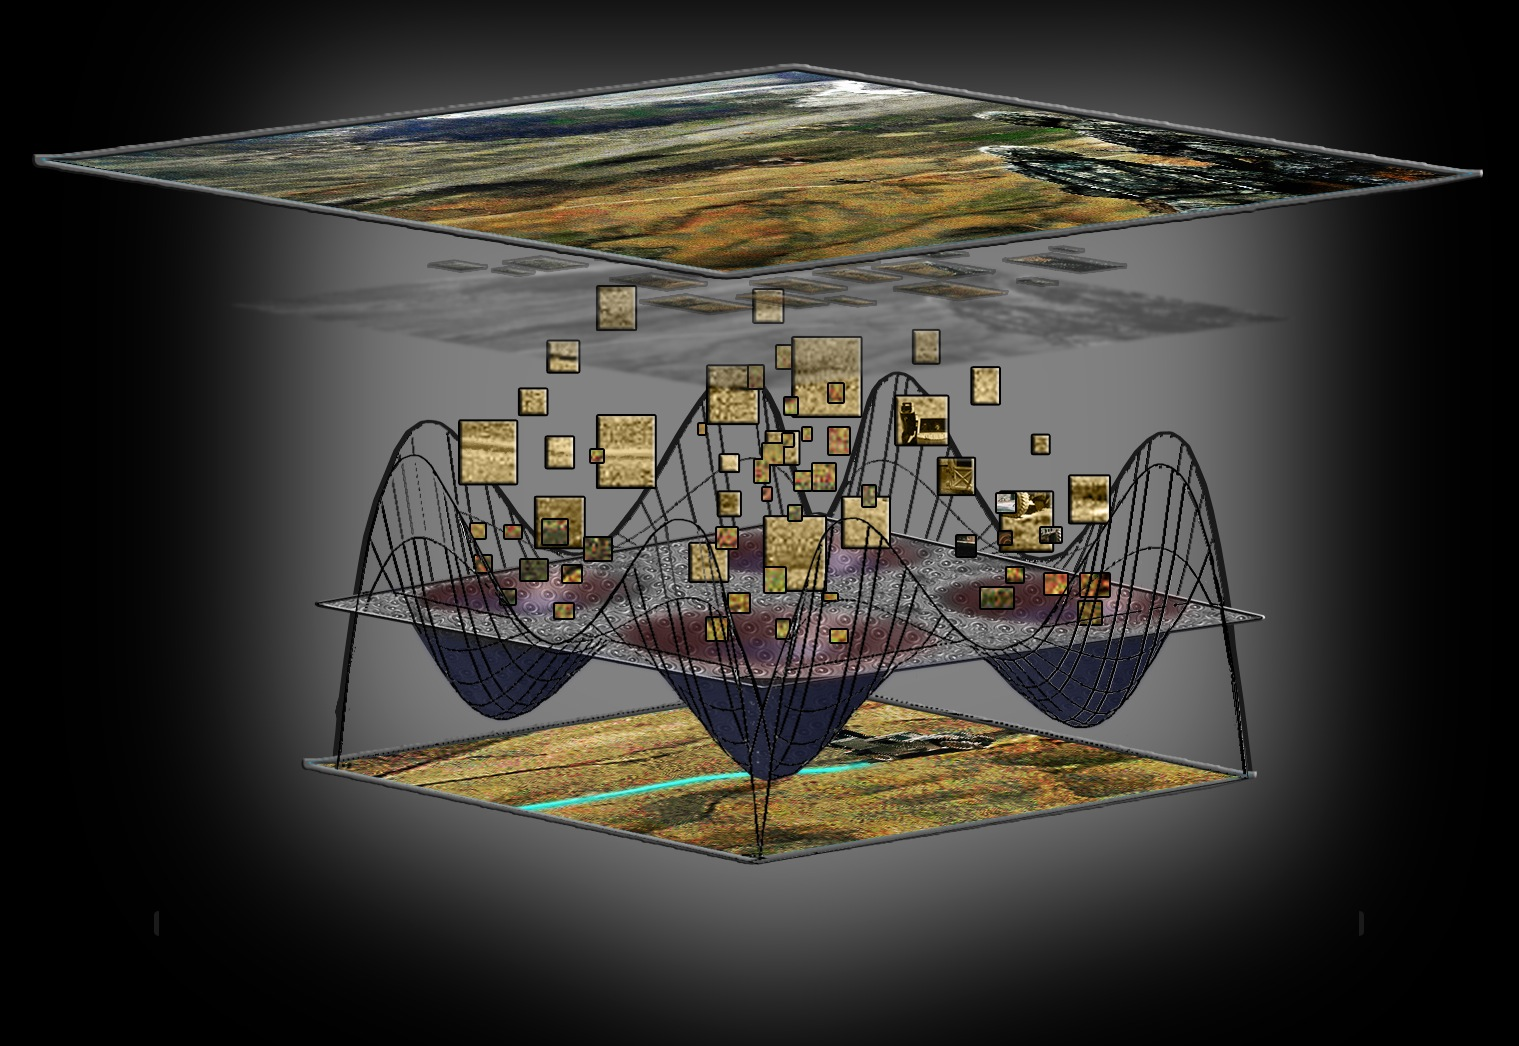 Artist's concept: Through UPSIDE, sensor data is analyzed by an array of self-organizing devices; the array processes the data using inference, where elements of the image are automatically sorted based on similarities and dissimilarities; sensor data flows into the array and target identification and tracking is the output [image courtesy DARPA].